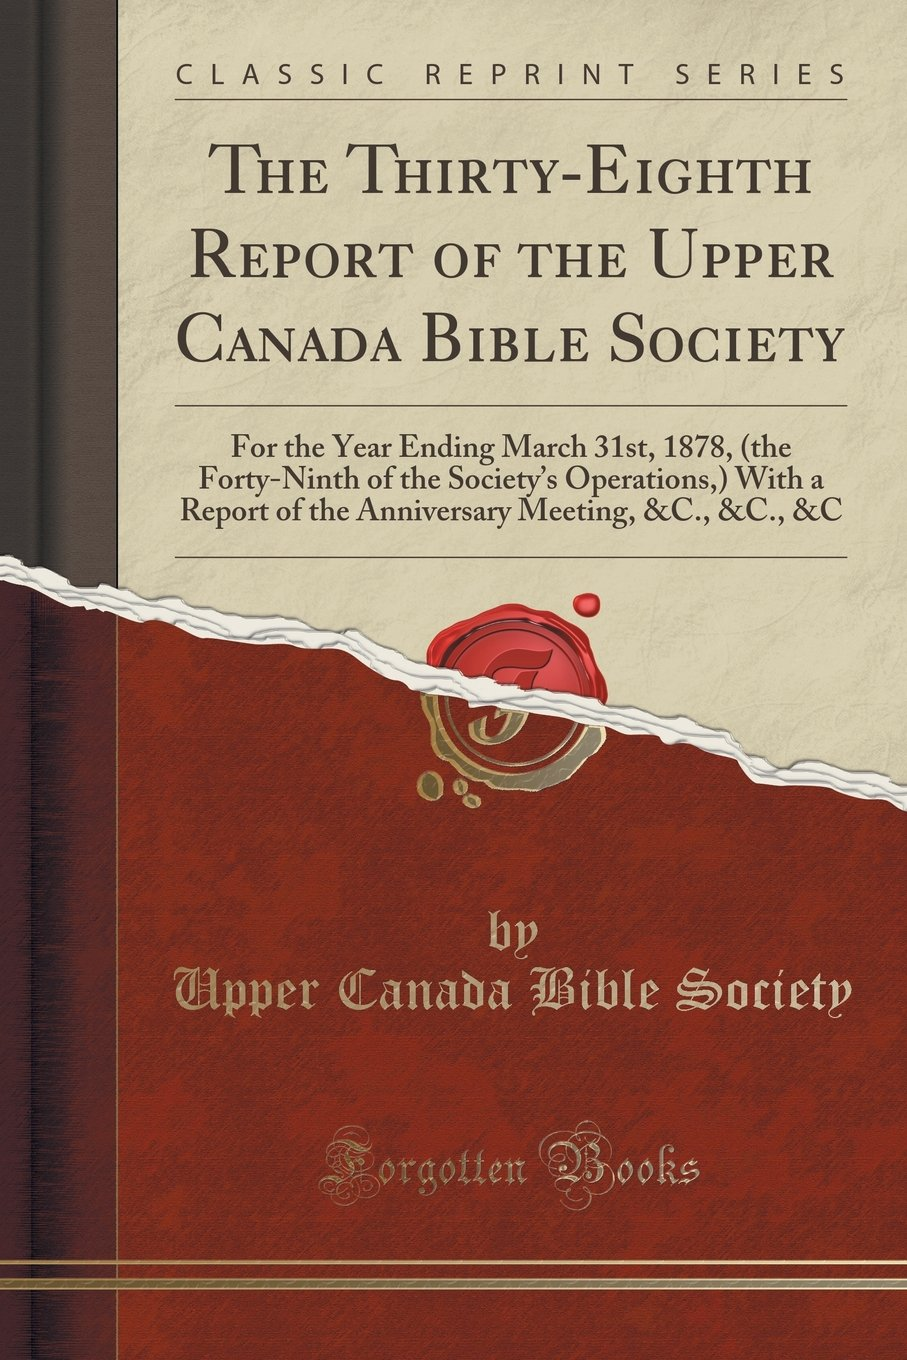 The Thirty-Eighth Report of the Upper Canada Bible Society: For the Year Ending March 31st, 1878, (the Forty-Ninth of the Society's Operations,) With ... Meeting, &C., &C., &C (Classic Reprint) pdf epub